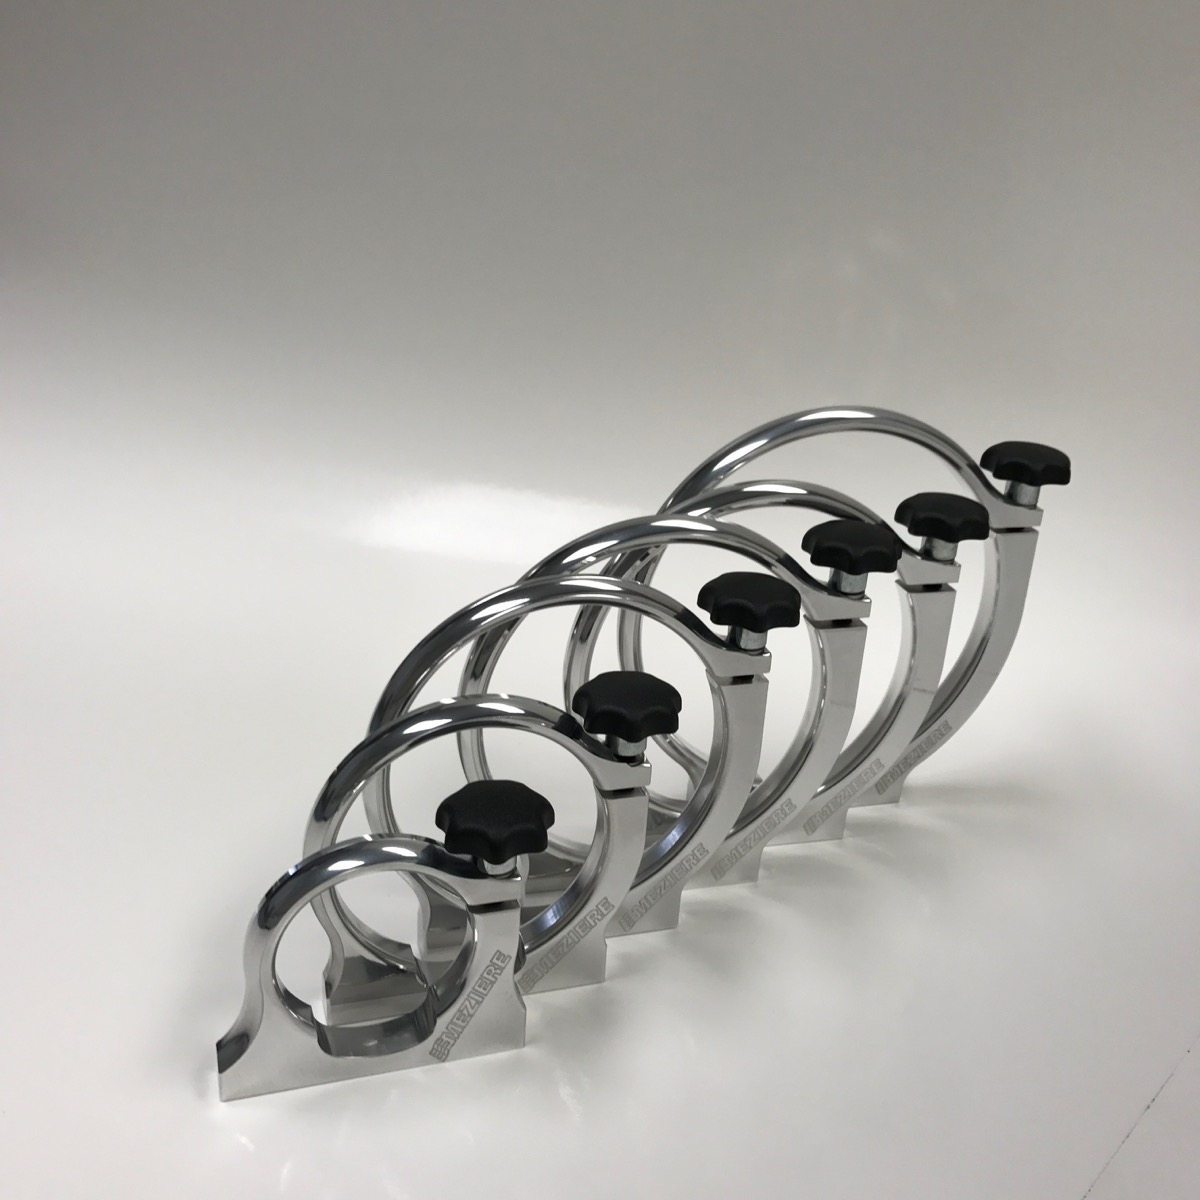 Meziere Enterprises Releases Killer New Bottle Clamps For Variety Of Racing Applications